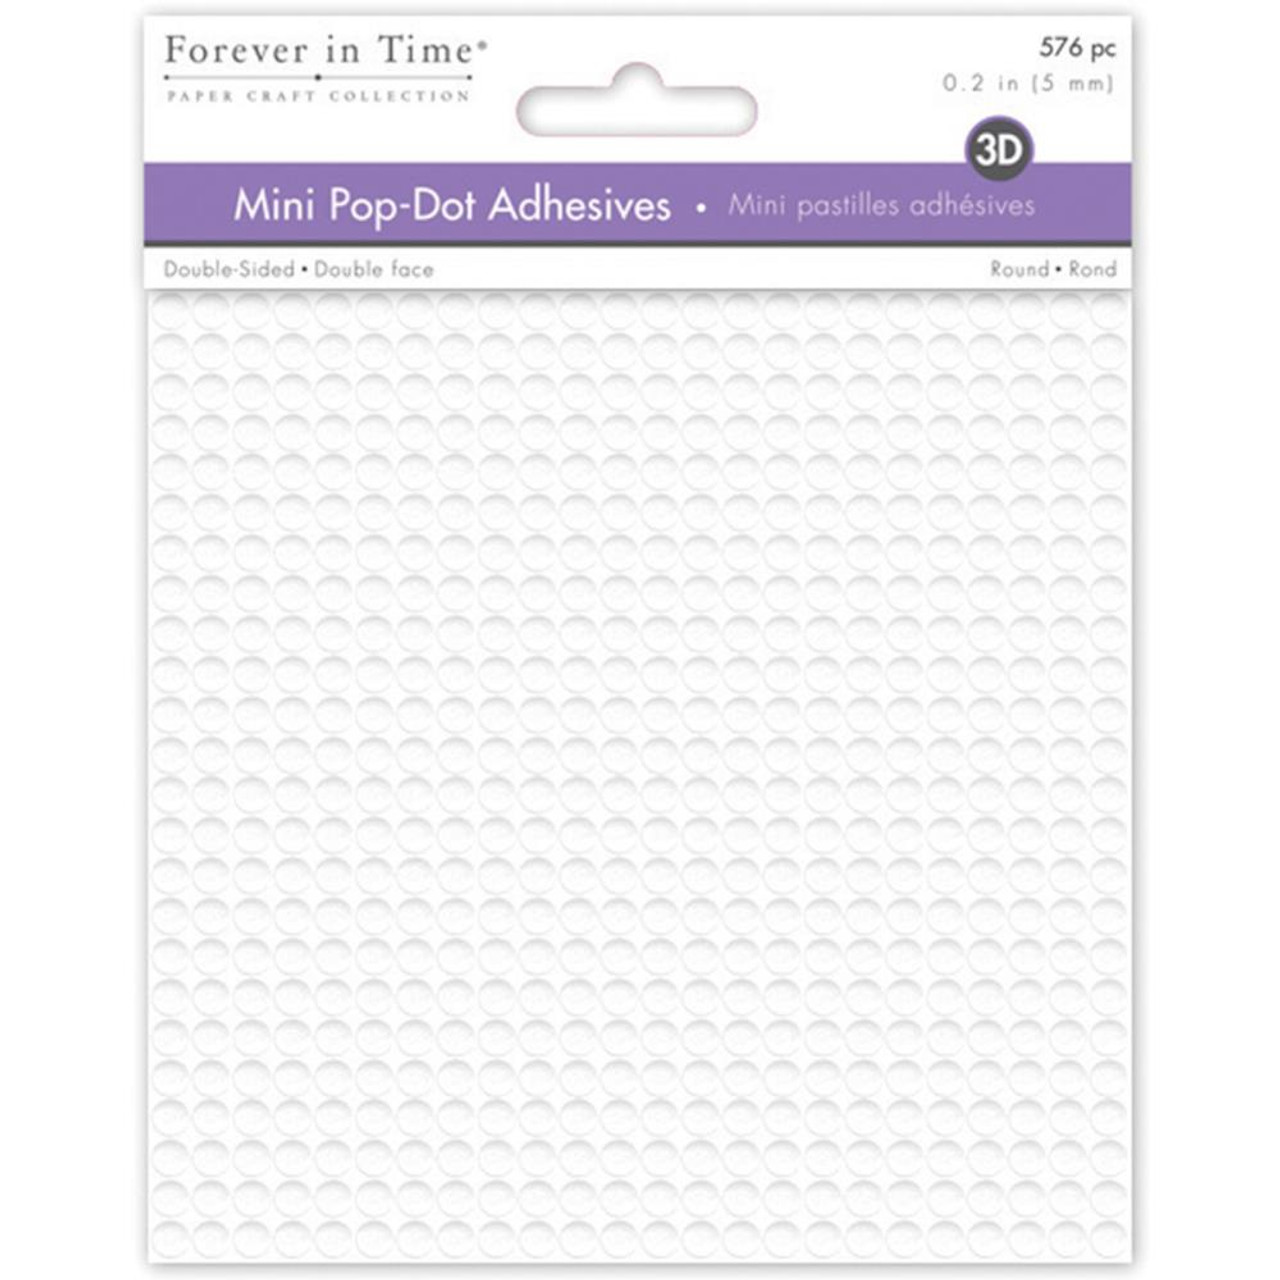 Micro Pop Dots Adhesive by Notions - Pkg. of 576 - .2 inch